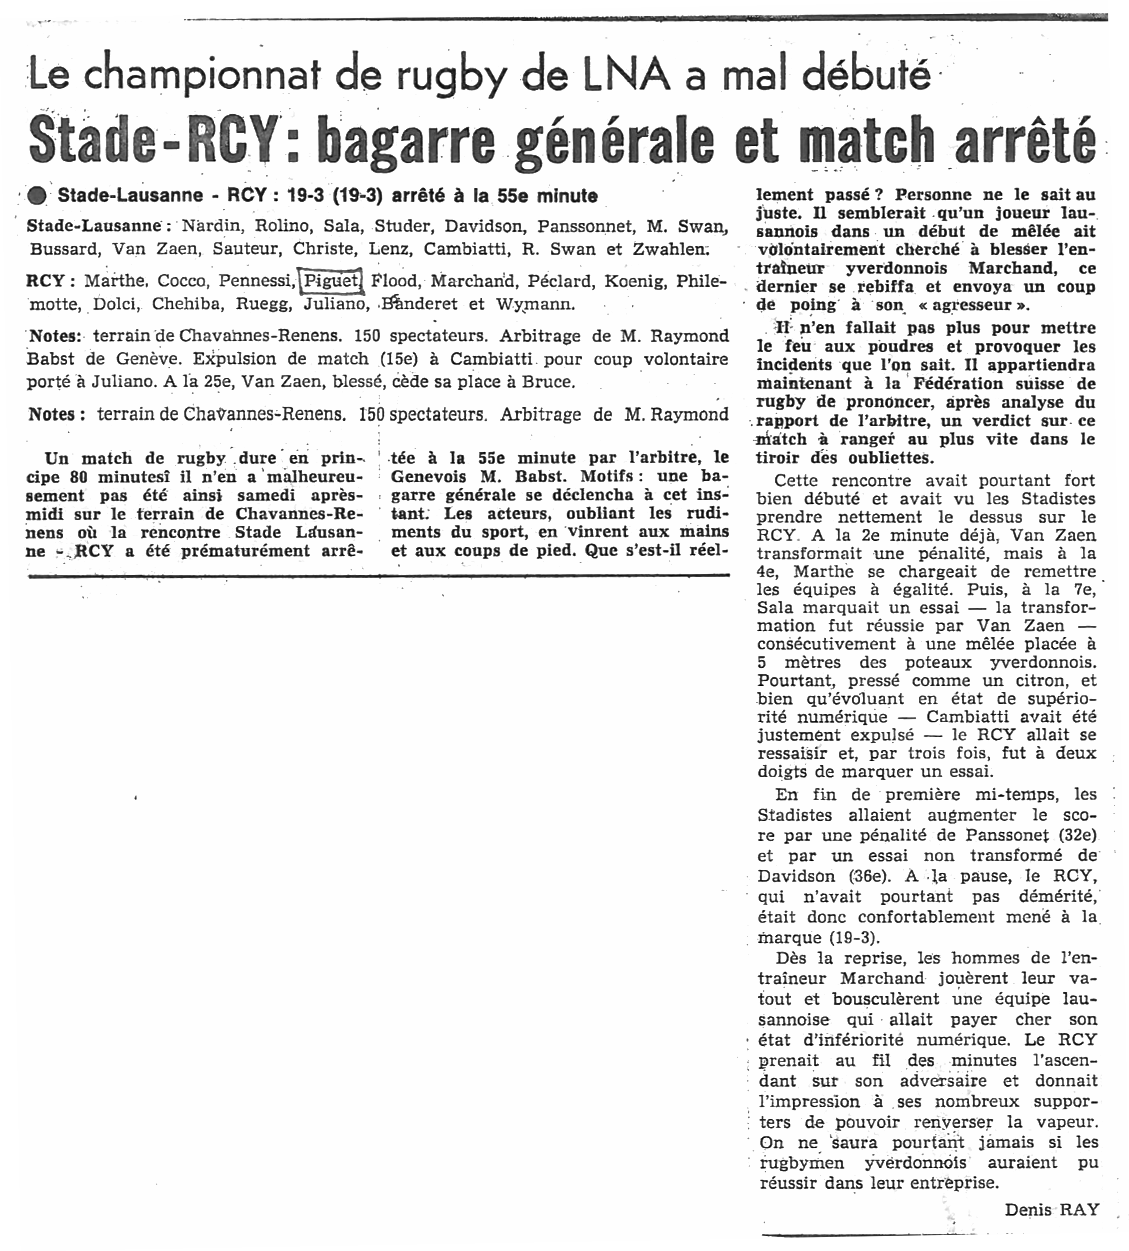 1979.09.18 RC STADE - RCY